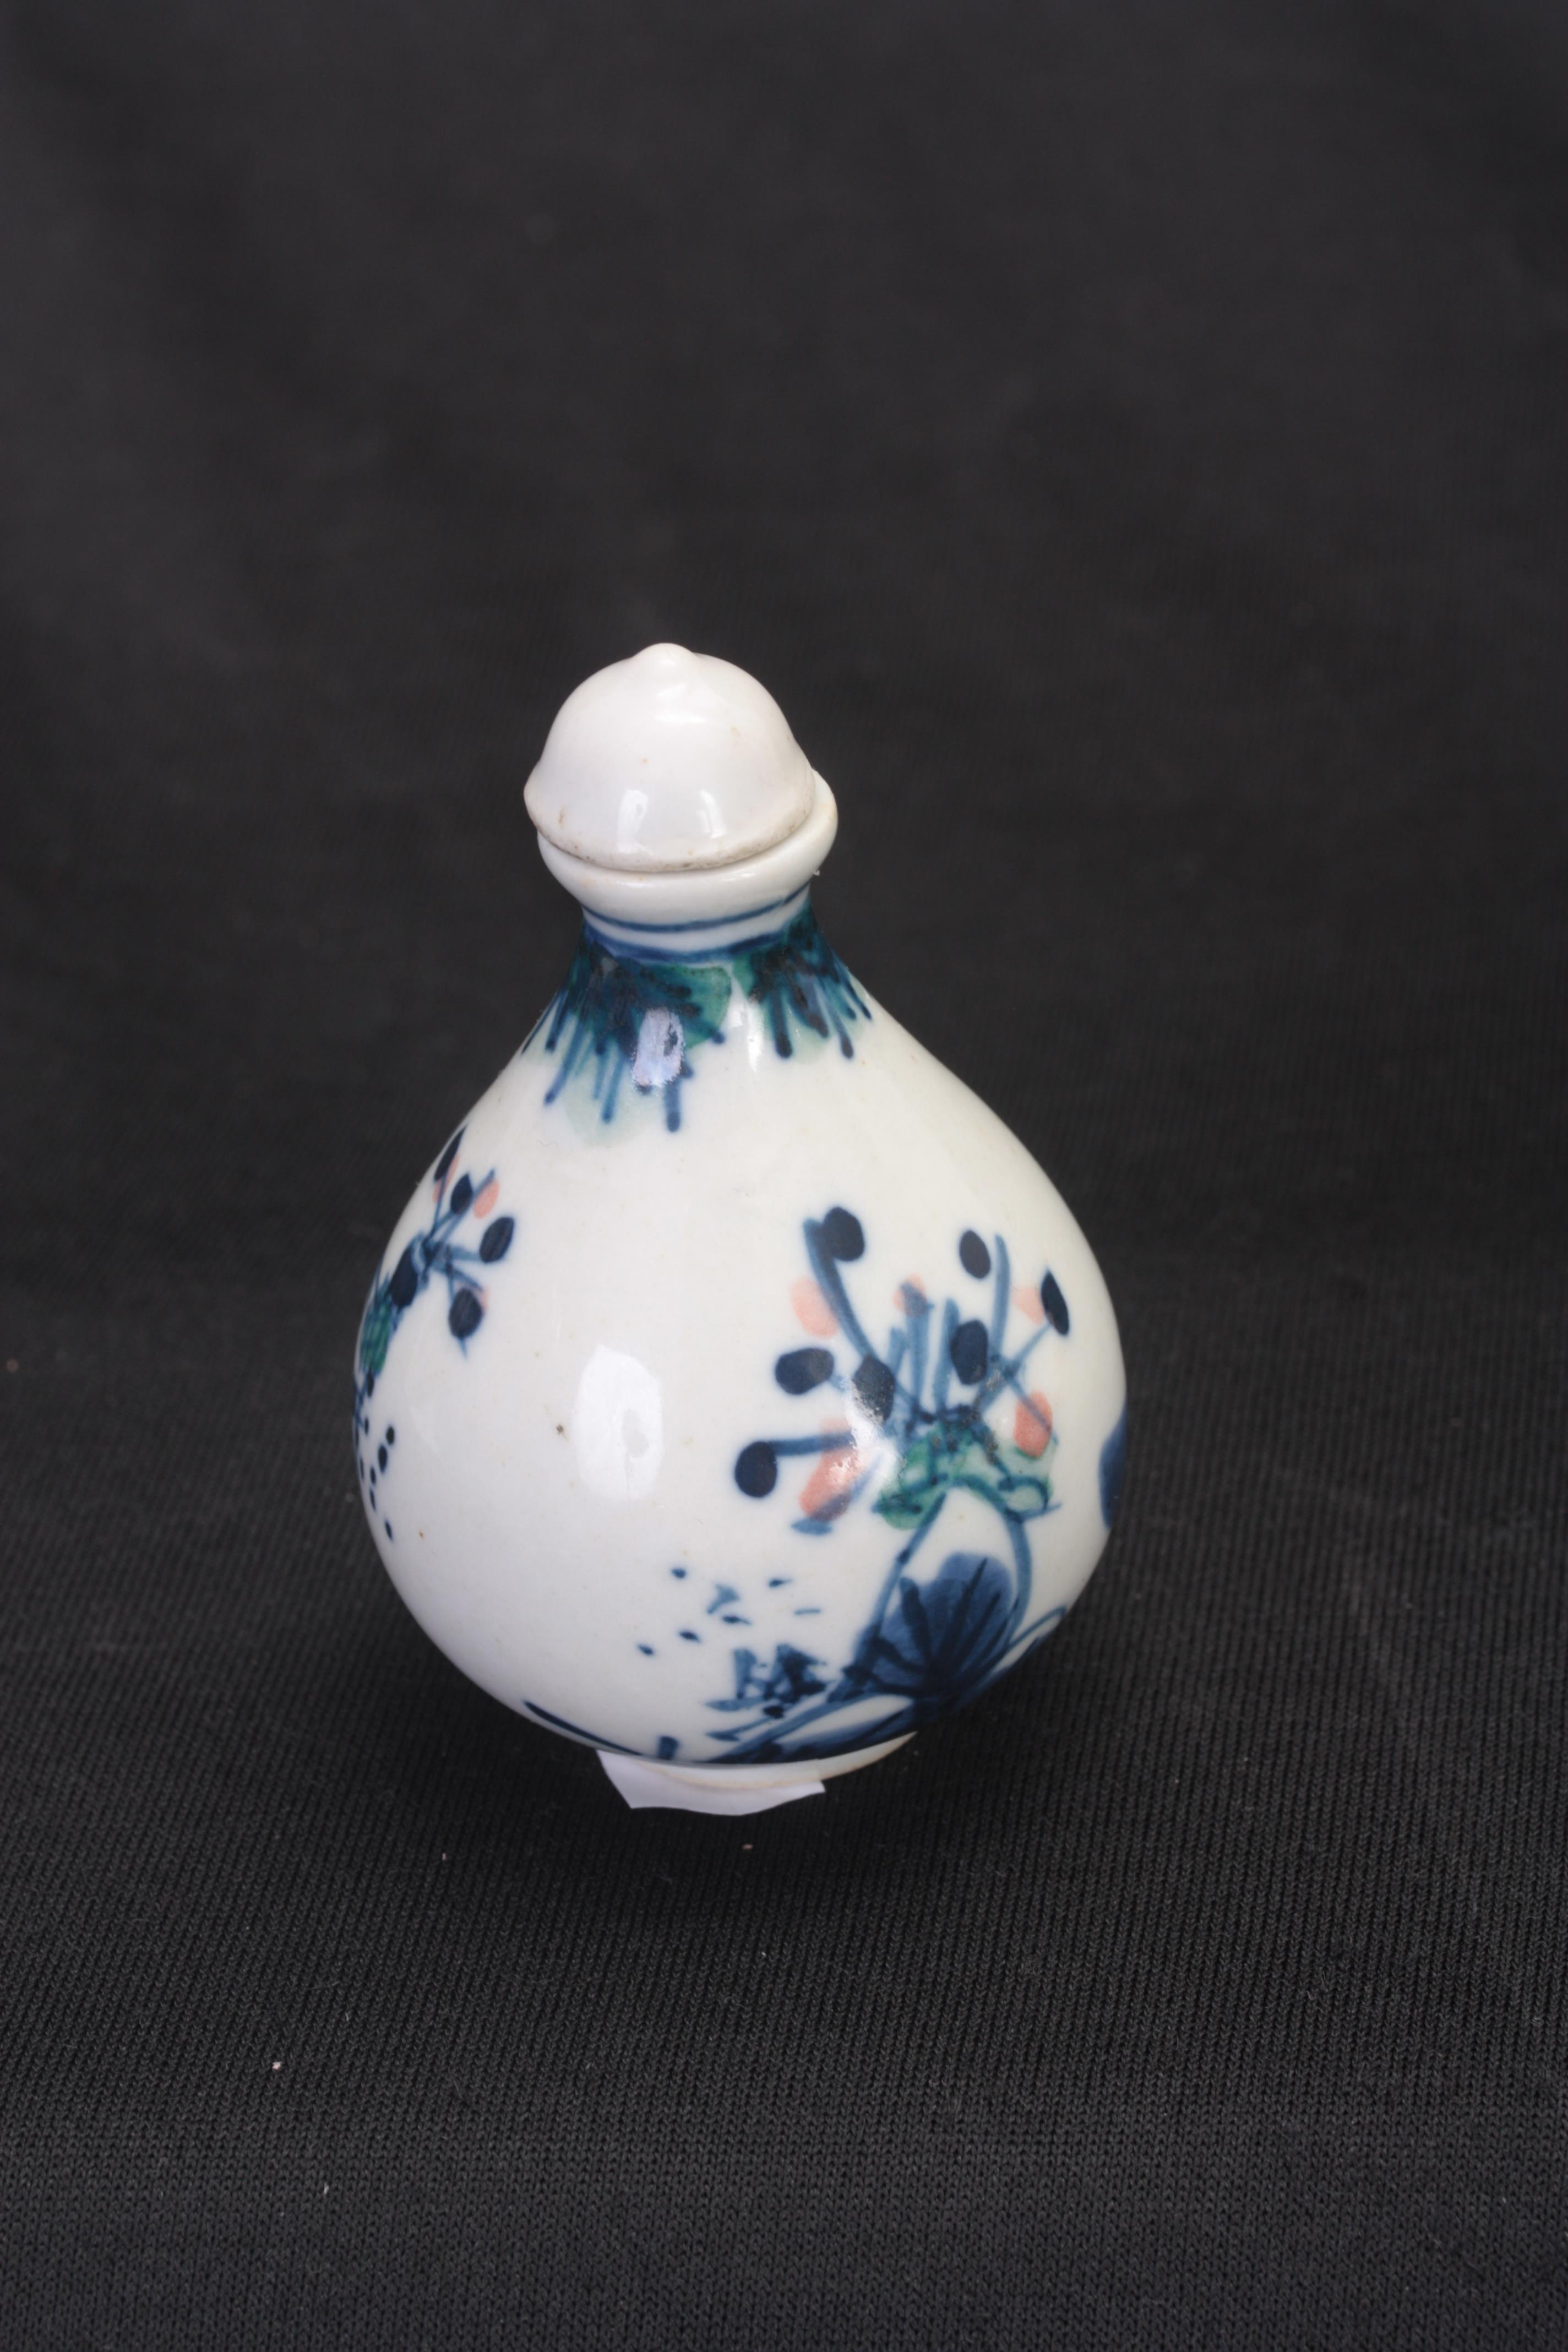 AN EARLY CHINESE BULBOUS SHAPED SNUFF BOTTLE decorated with figures in a garden setting - signed - Image 4 of 5